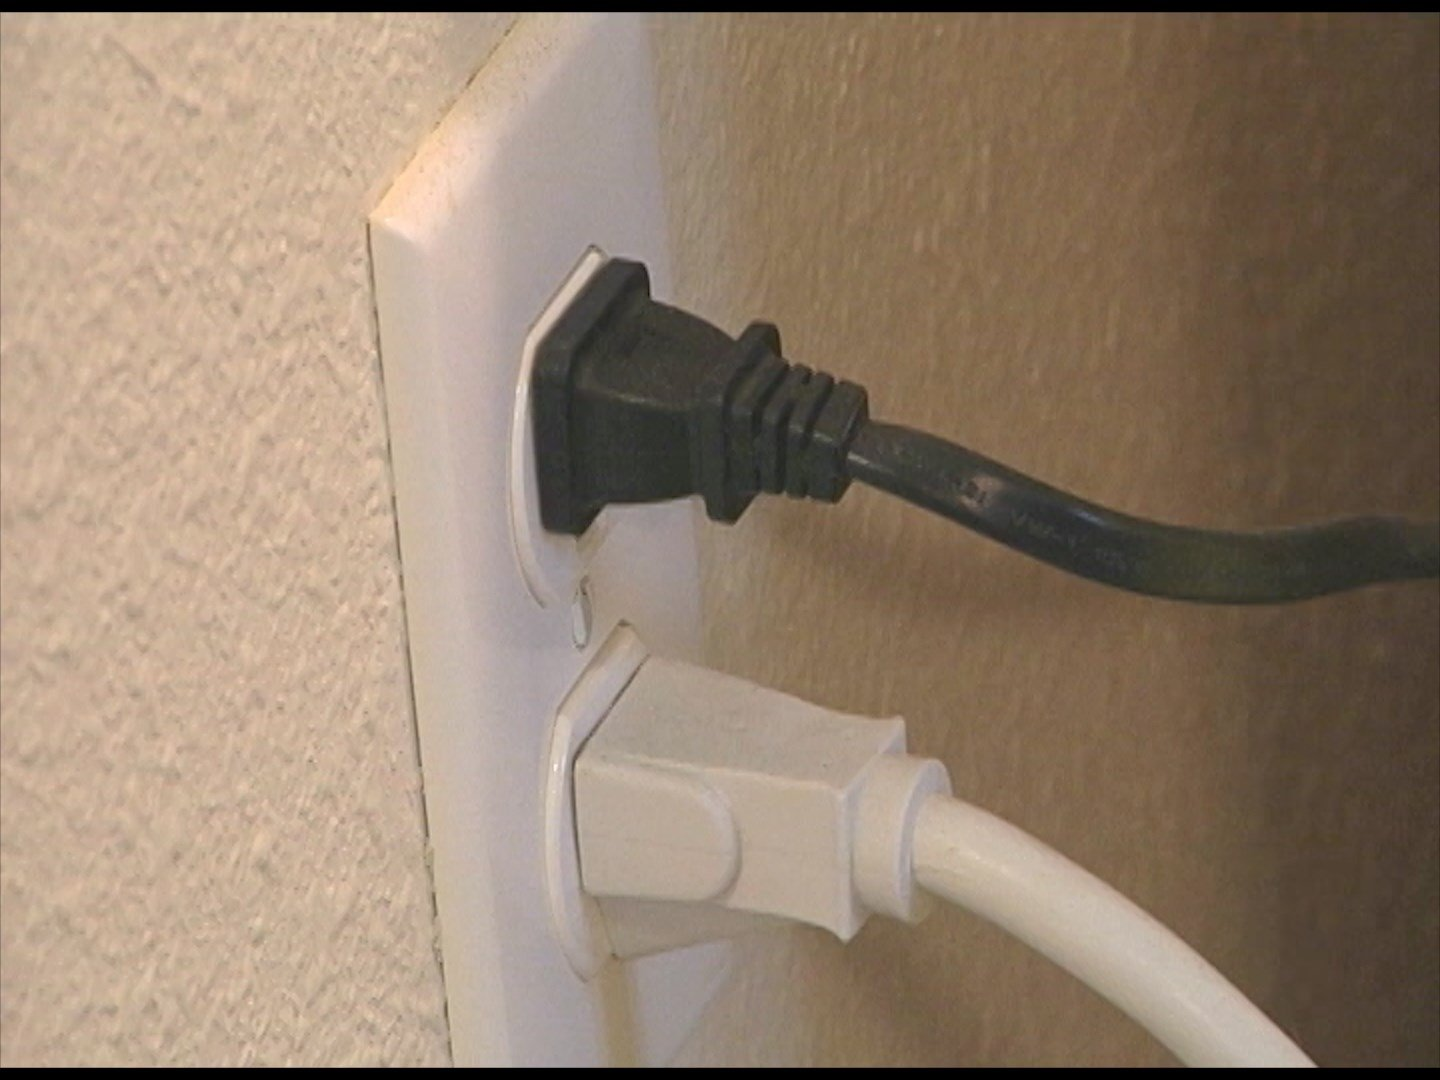 Simple tricks can save you on your utility bill